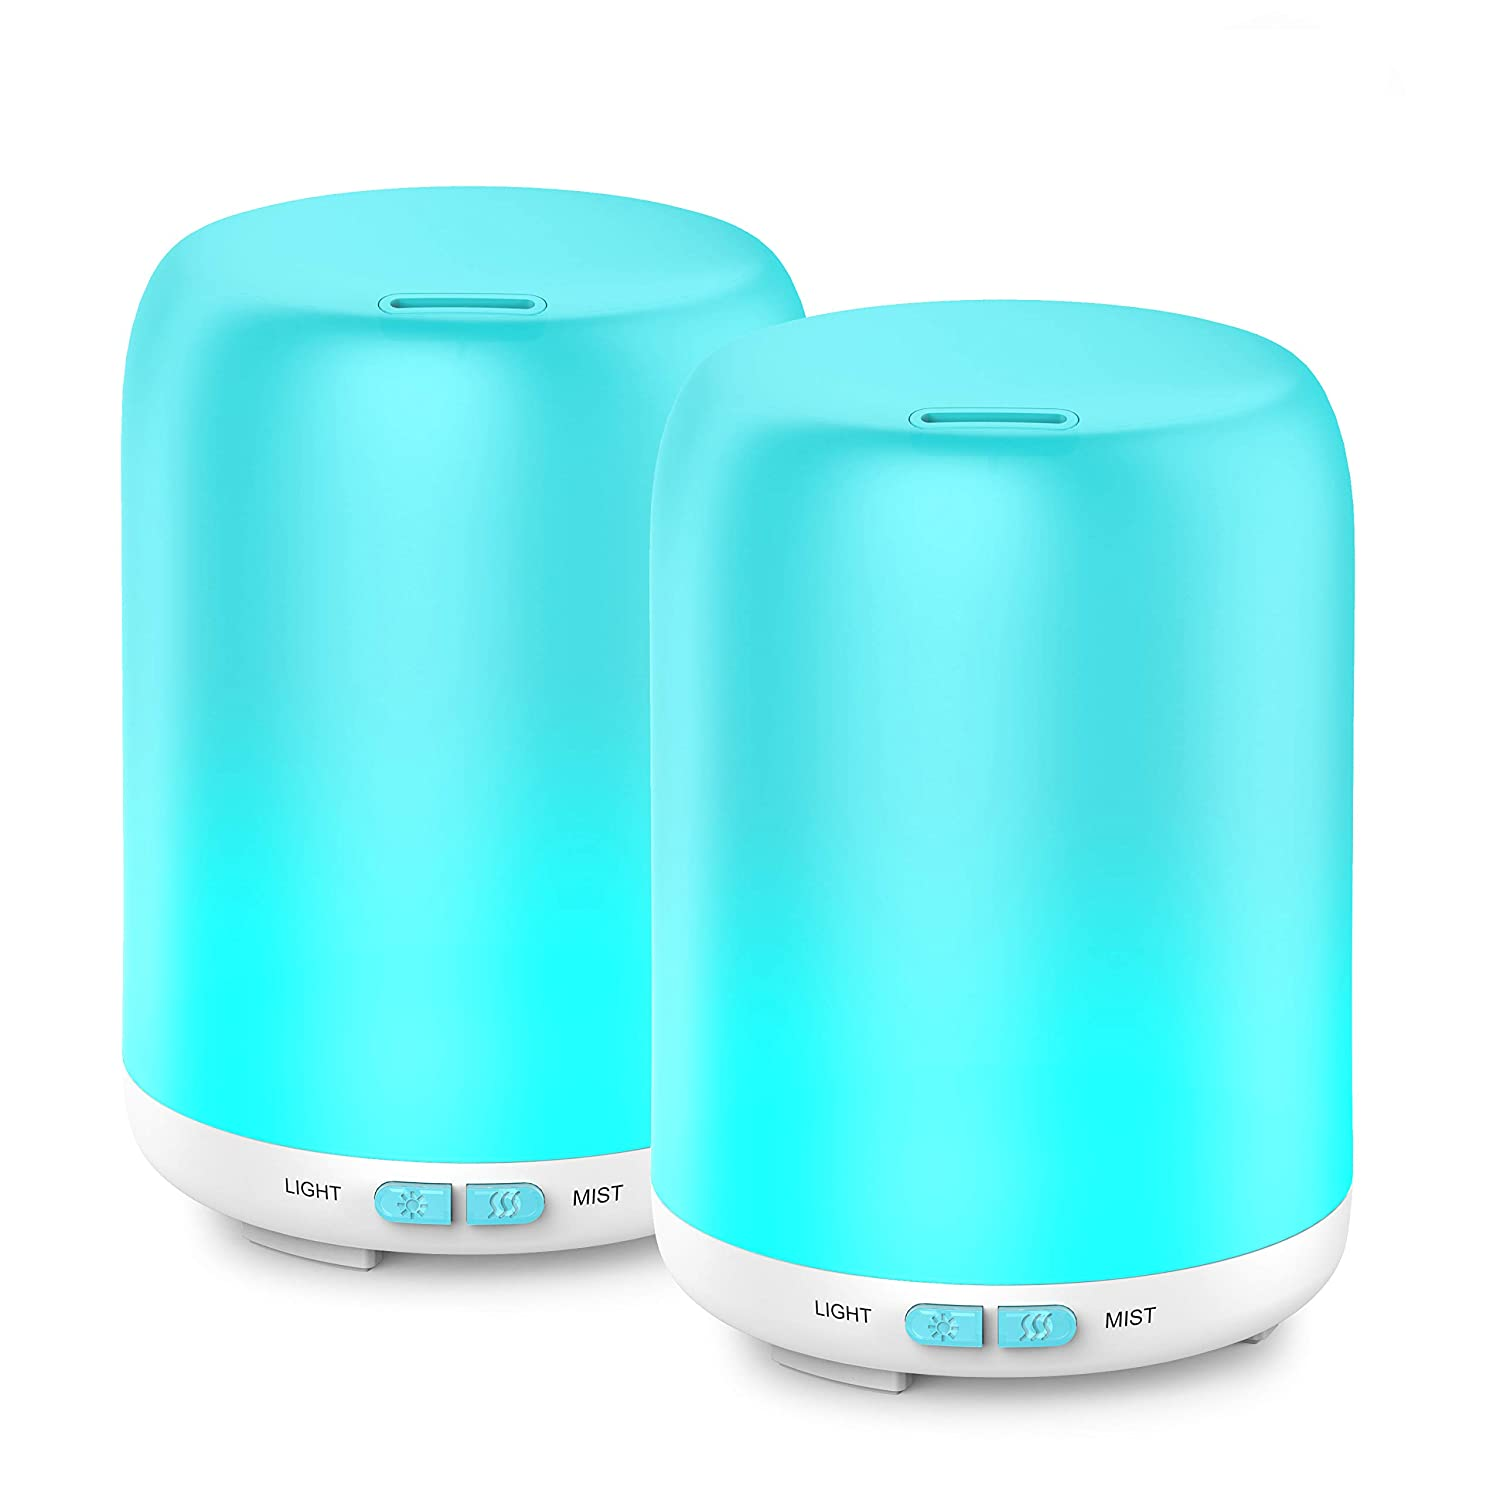 Essential Oil Diffuser, 2 Pack Aroma Diffuser Ultrasonic Cool Mist Aromatherapy with 7 LED lights, Waterless Auto Shut-off for Home Spa Baby Bedroom, 120ml Aptoyu XXJ-006